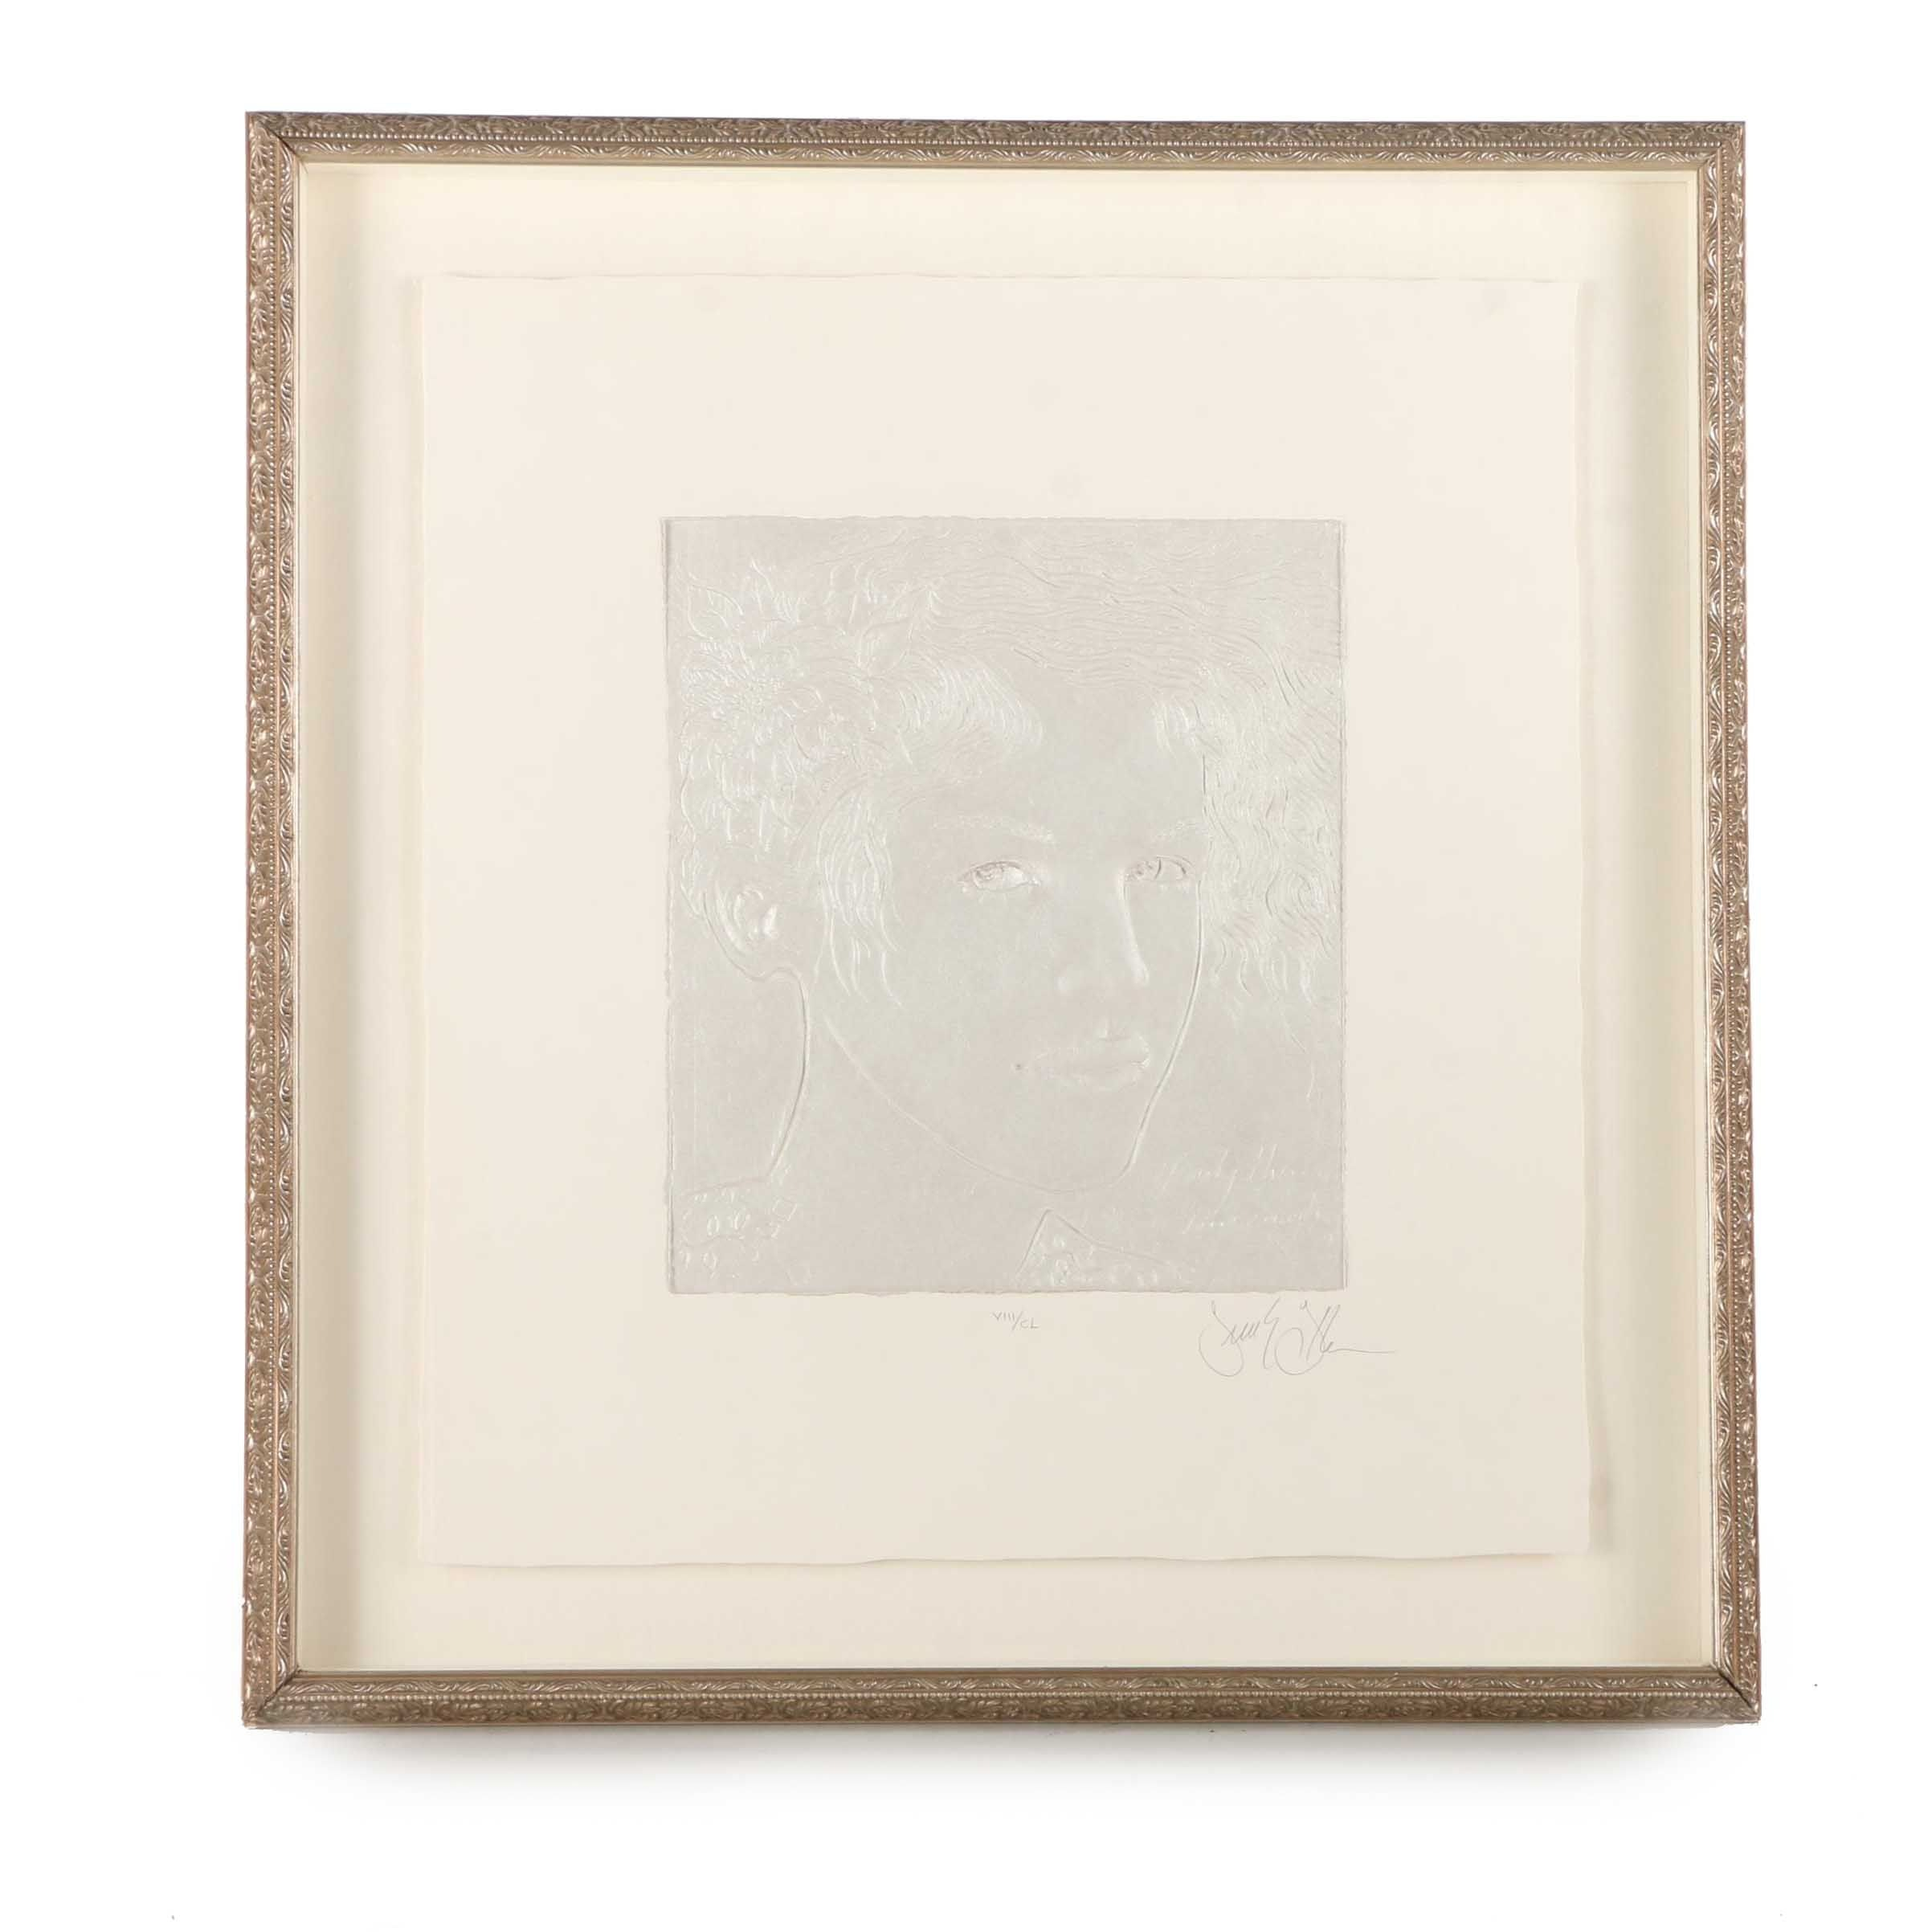 S. E. Gallo Limited Edition Relief Print on Canvas of a Woman